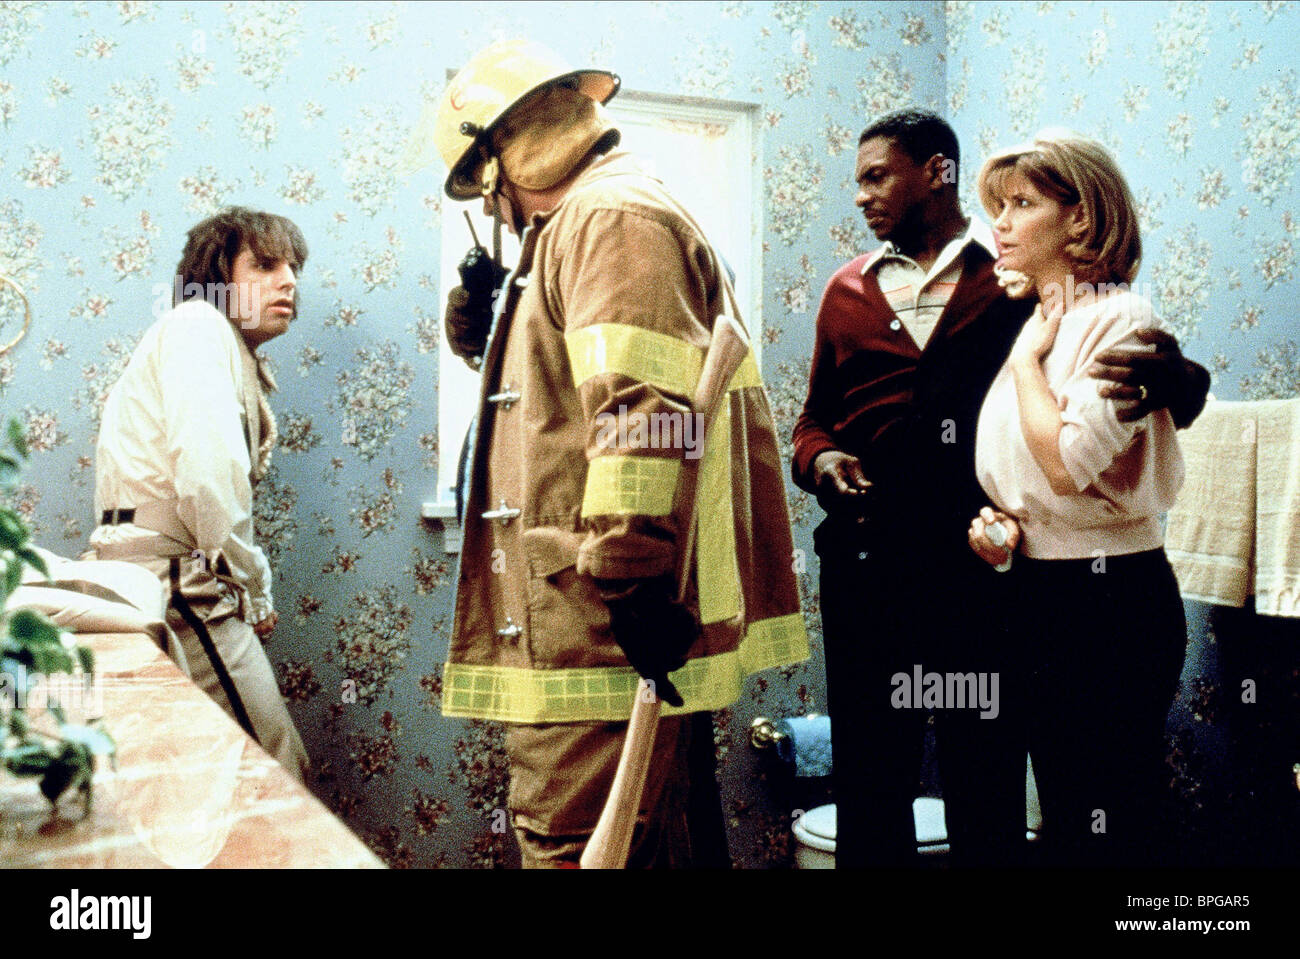 BEN STILLER, LENNY CLARKE, KEITH DAVID, MARKIE POST, THERE'S SOMETHING ABOUT MARY, 1998 - Stock Image